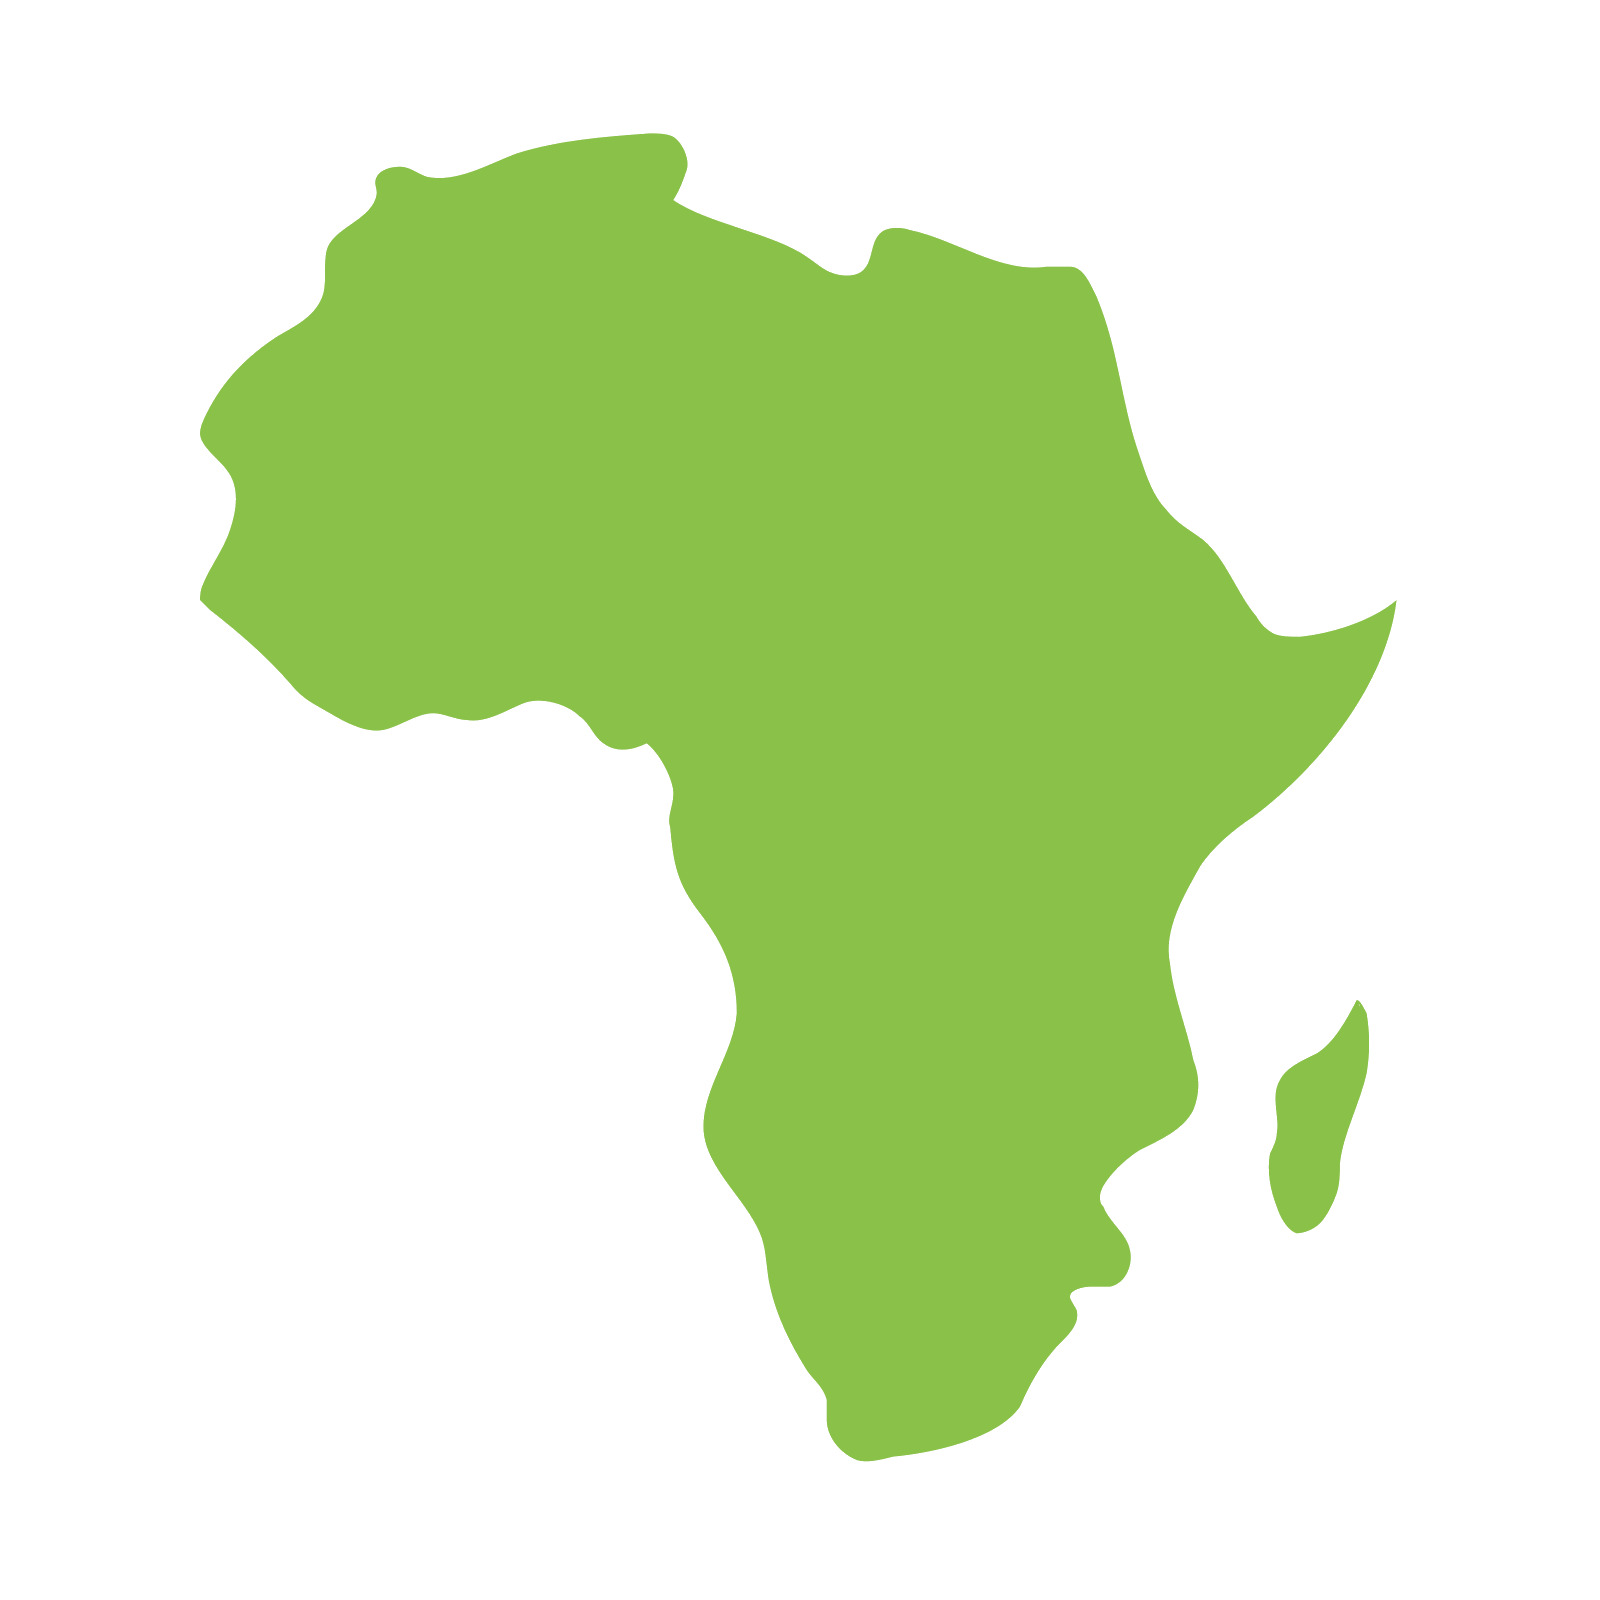 Africa icon and vector. Png pictures free download clip art stock